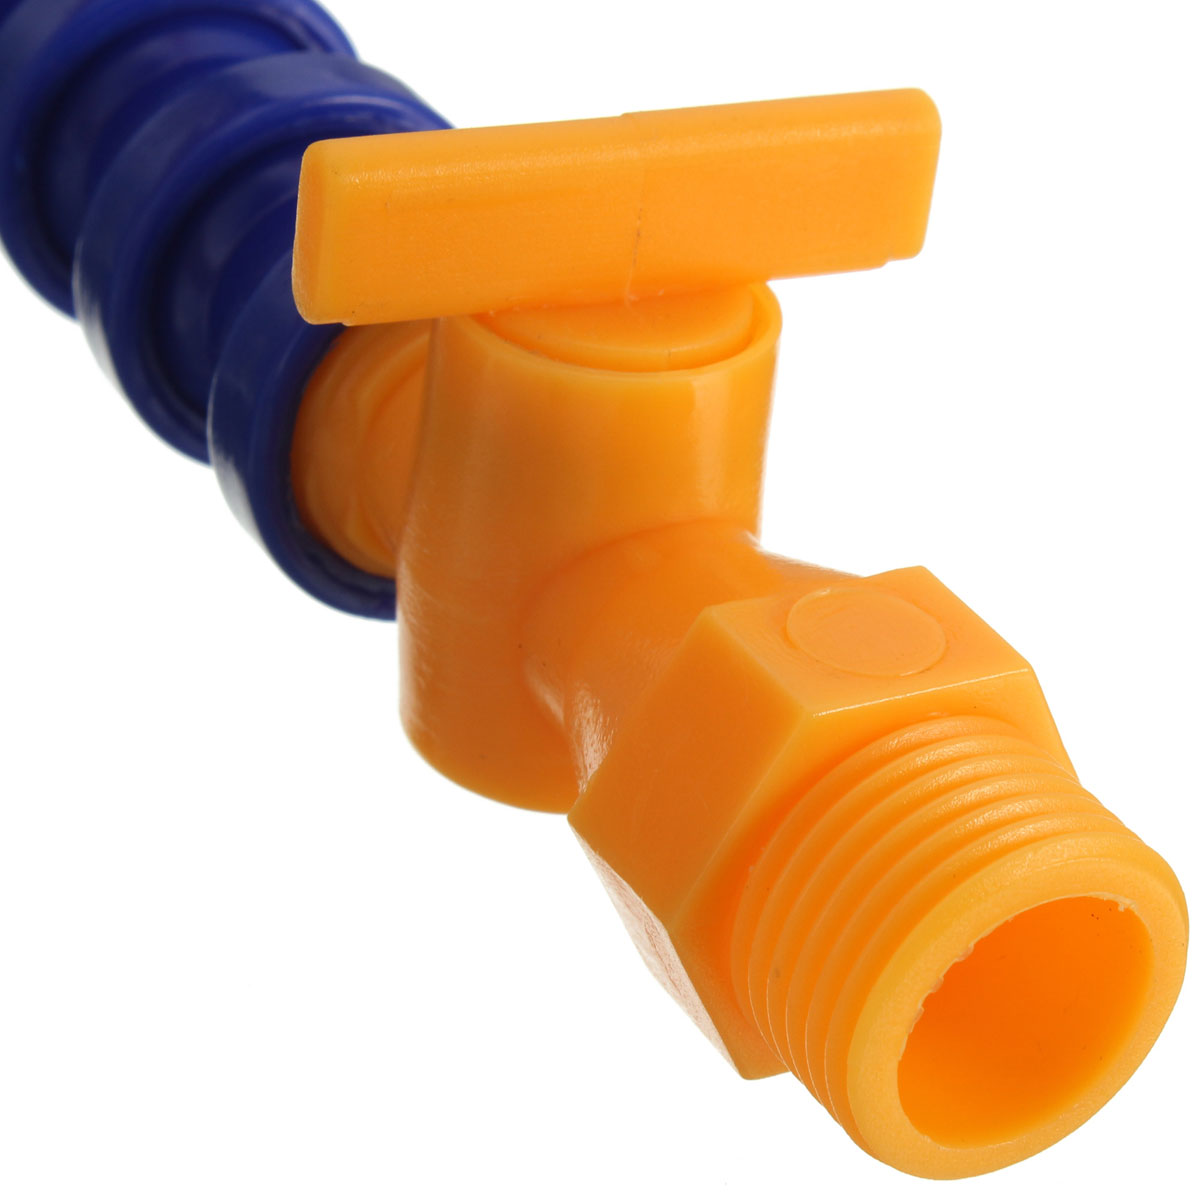 Mm flexible plastic water oil coolant pipe hose